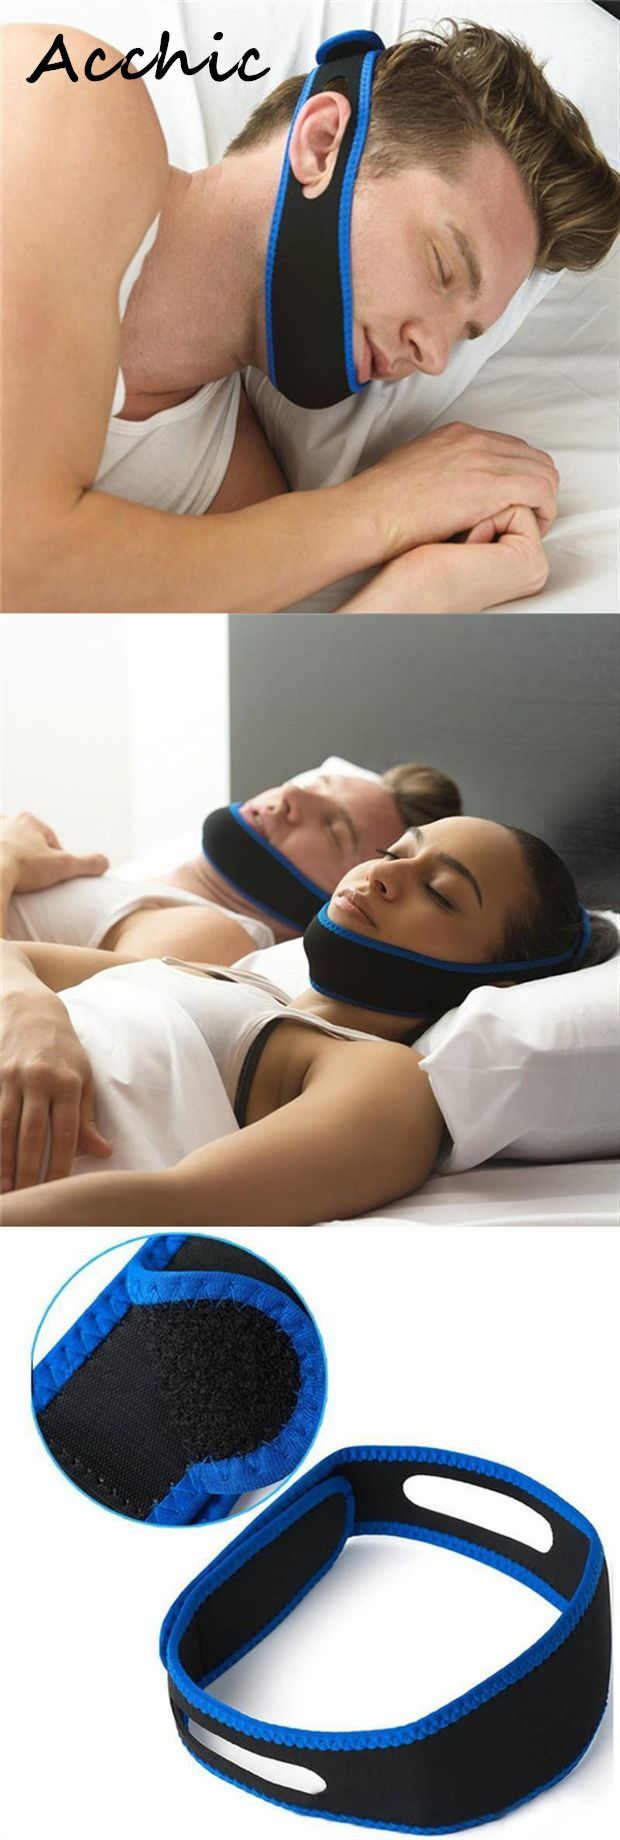 $8.96 Do you need it?Anti Snoring Chin Straps Mouth Guard Snore Stopper For Sleeping